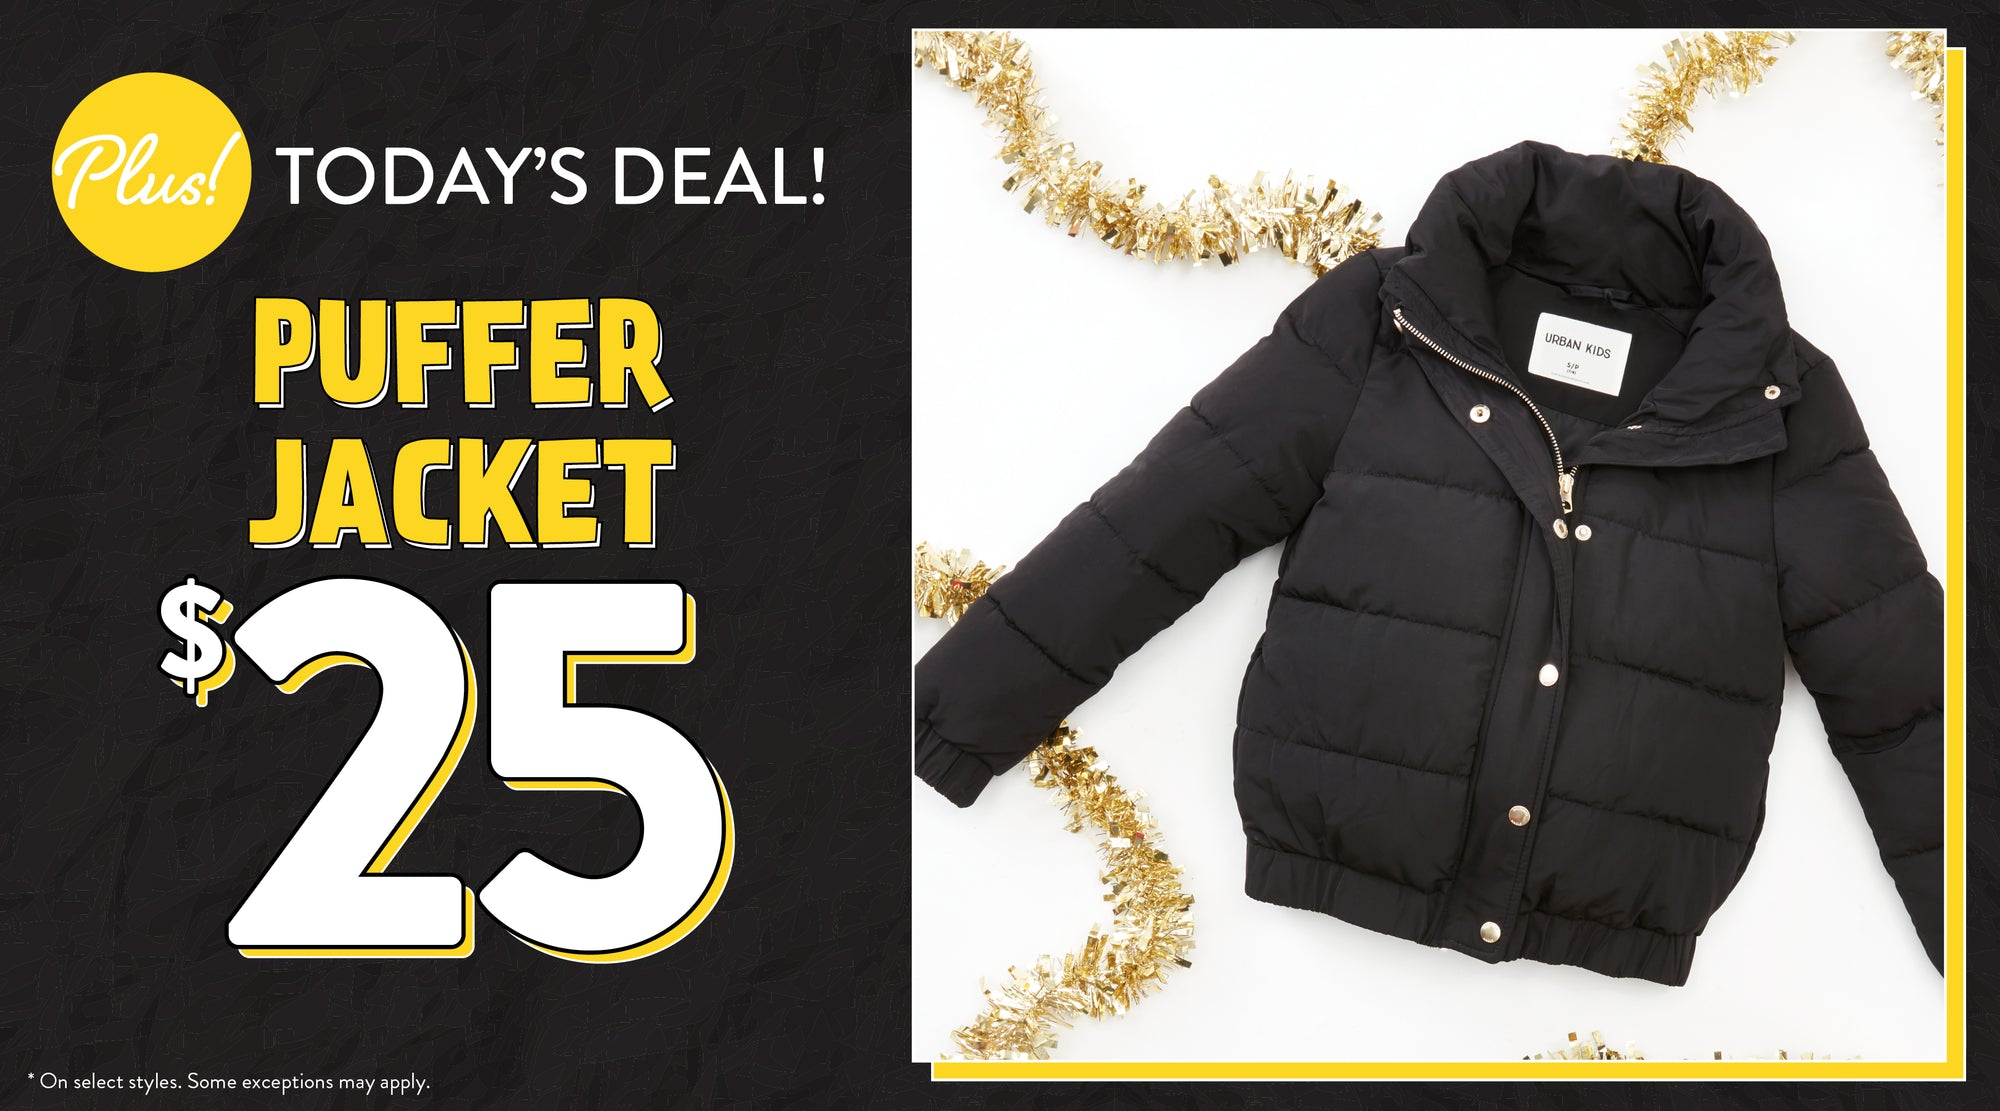 Today's Deal - $25 Puffer Jacket